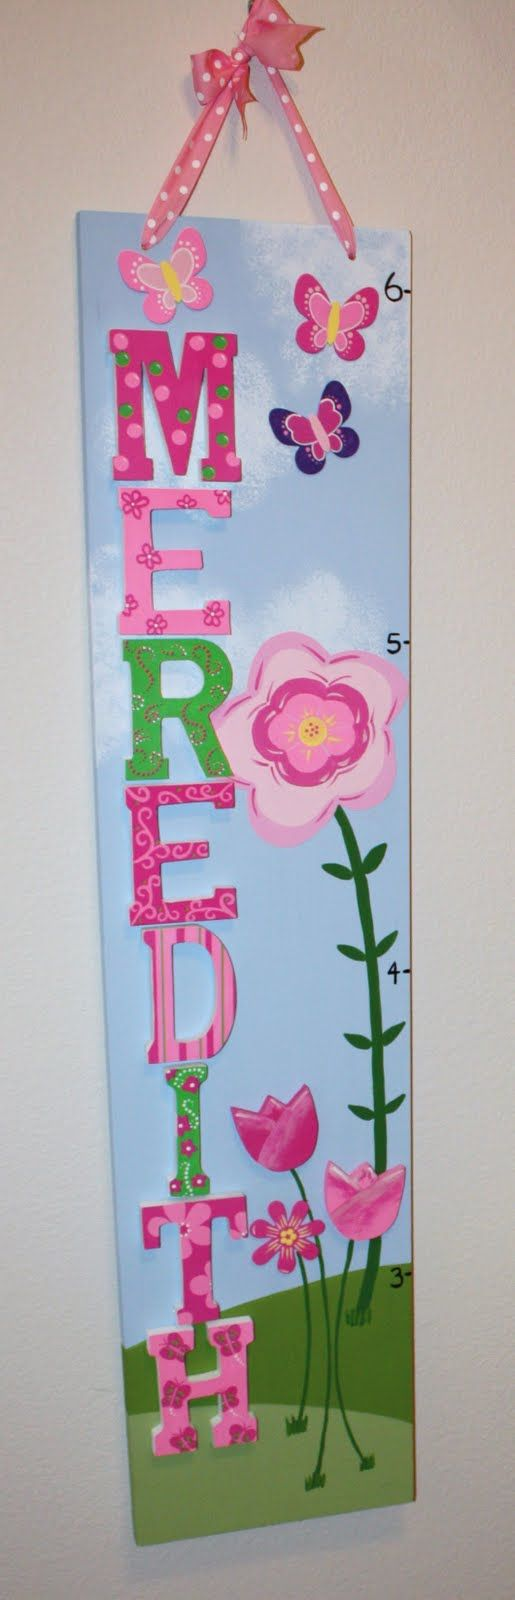 65 best growth chart ideas images on pinterest growth charts such a cute idea for a little girls growth chart love it nvjuhfo Choice Image